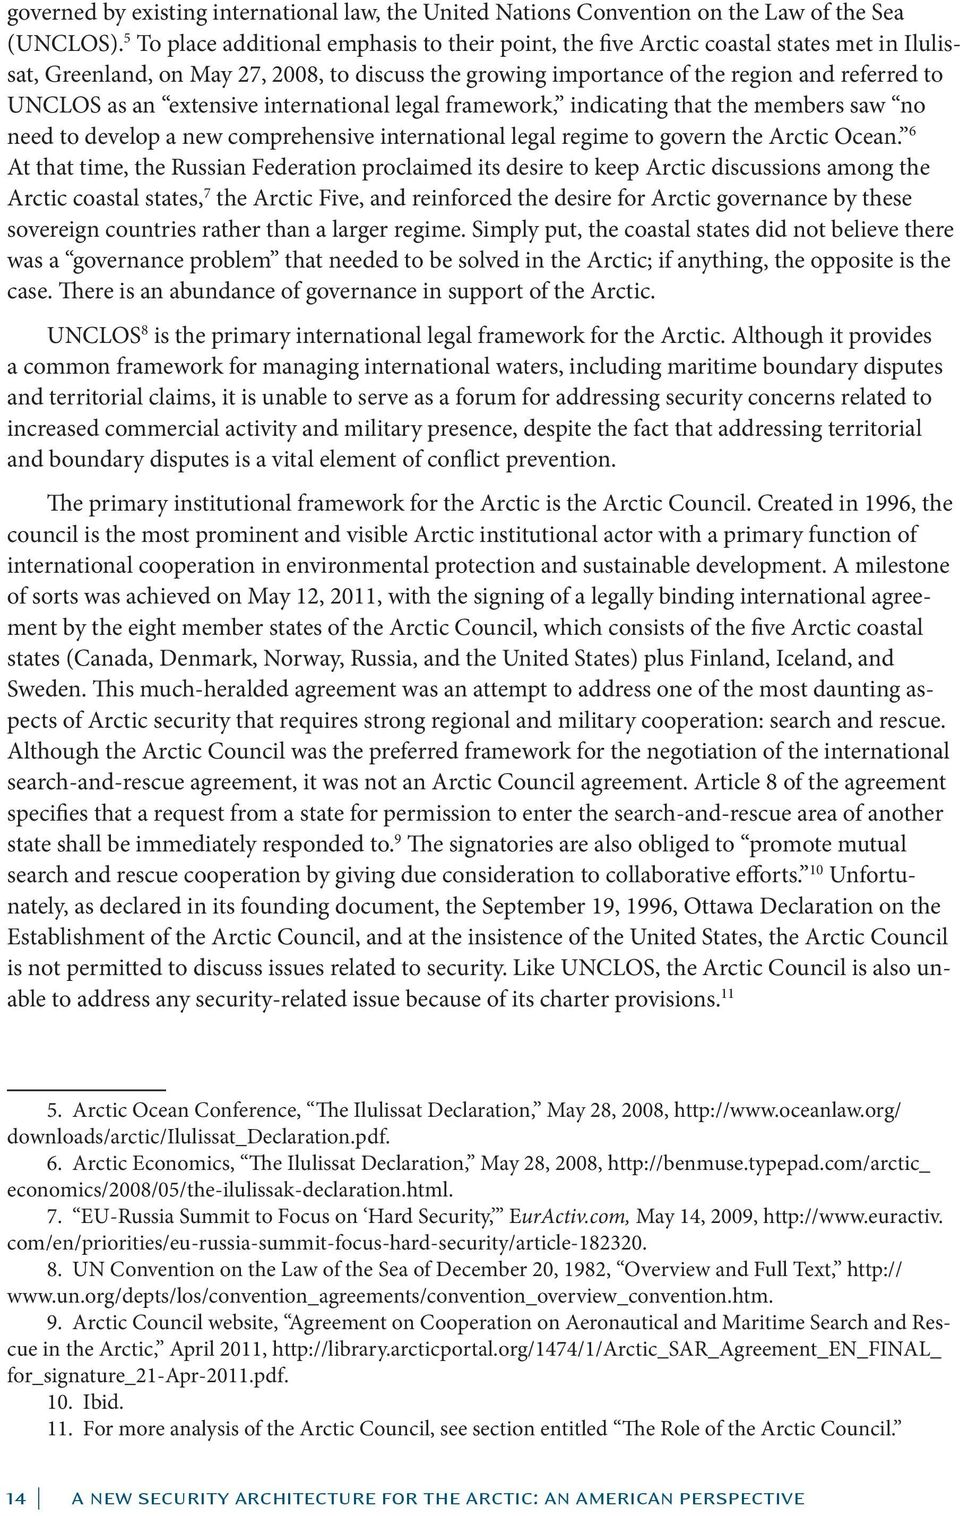 an extensive international legal framework, indicating that the members saw no need to develop a new comprehensive international legal regime to govern the Arctic Ocean.